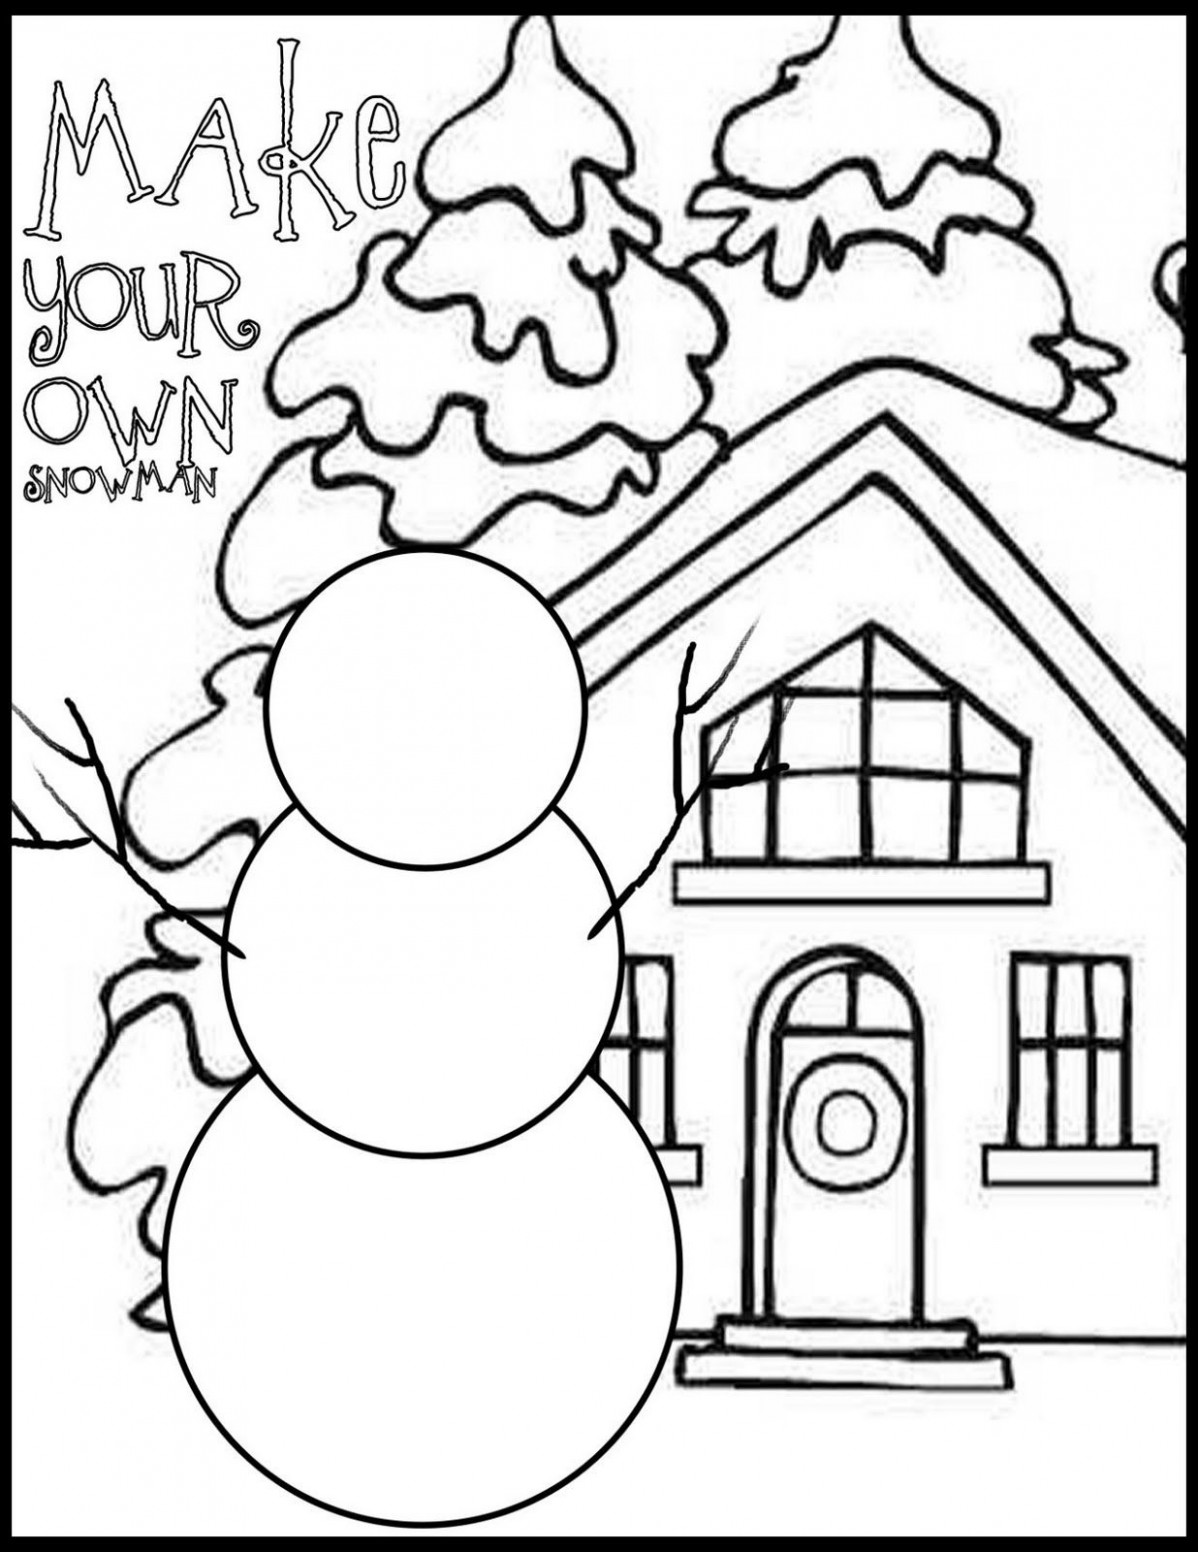 Draw Your Own Snowman Coloring Page   Christmas   Christmas coloring ..